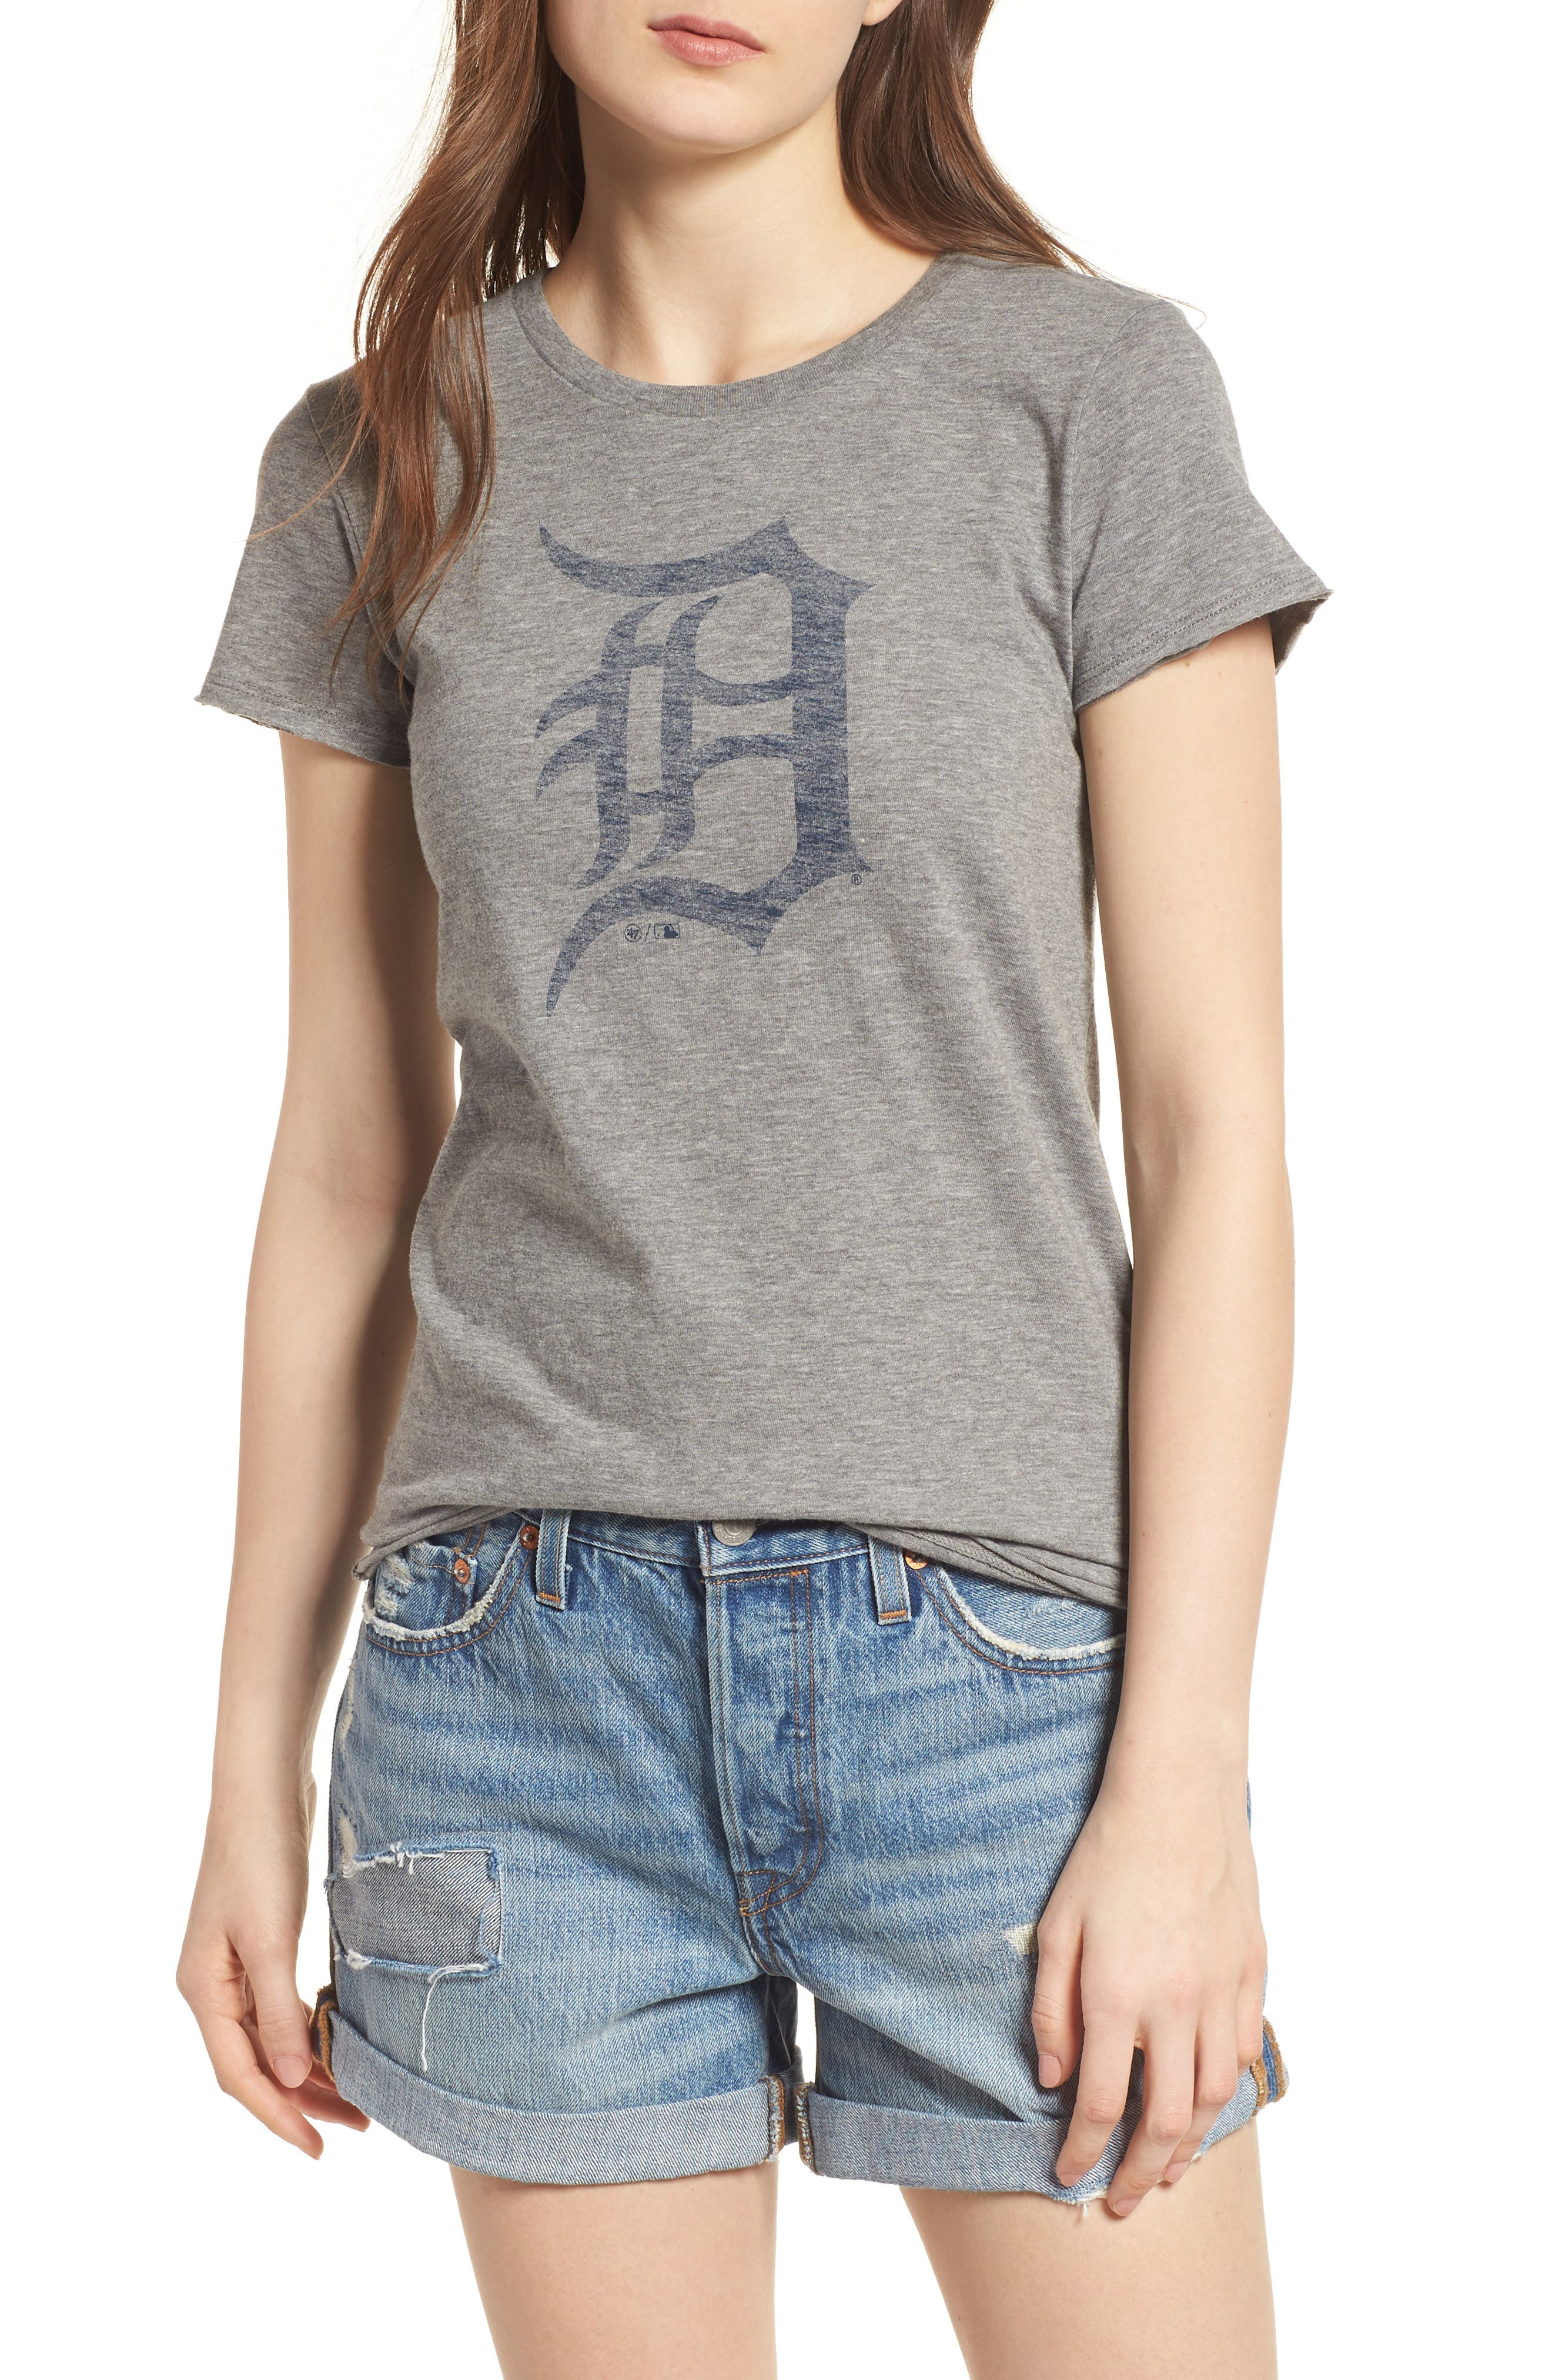 Detroit Tigers Fader Letter Tee,                             Main thumbnail 1, color,                             021